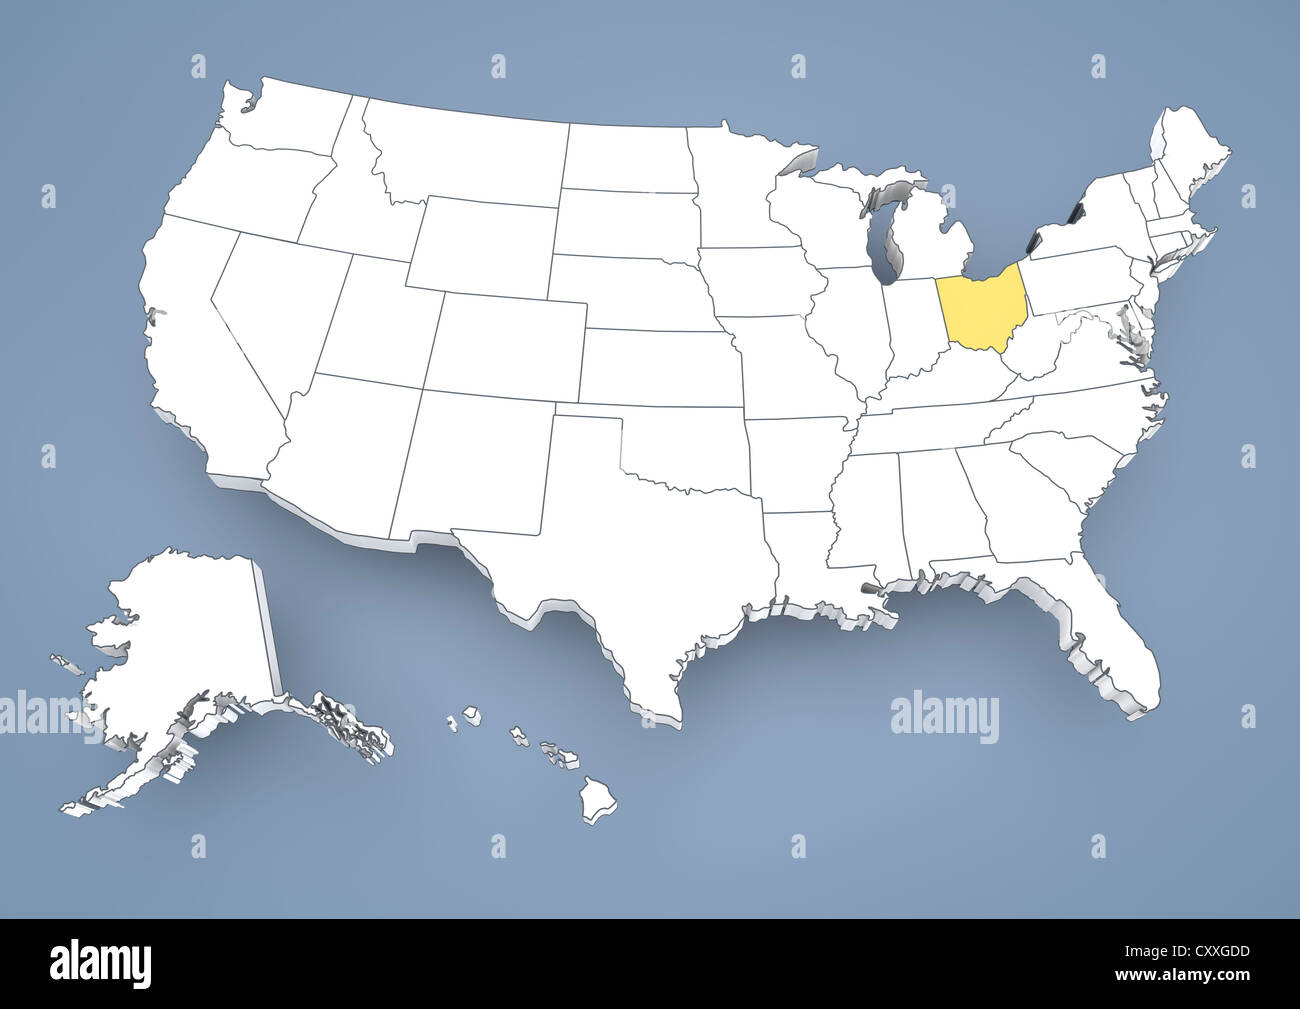 Ohio Oh Highlighted On A Contour Map Of Usa United States Of – Map Usa Ohio